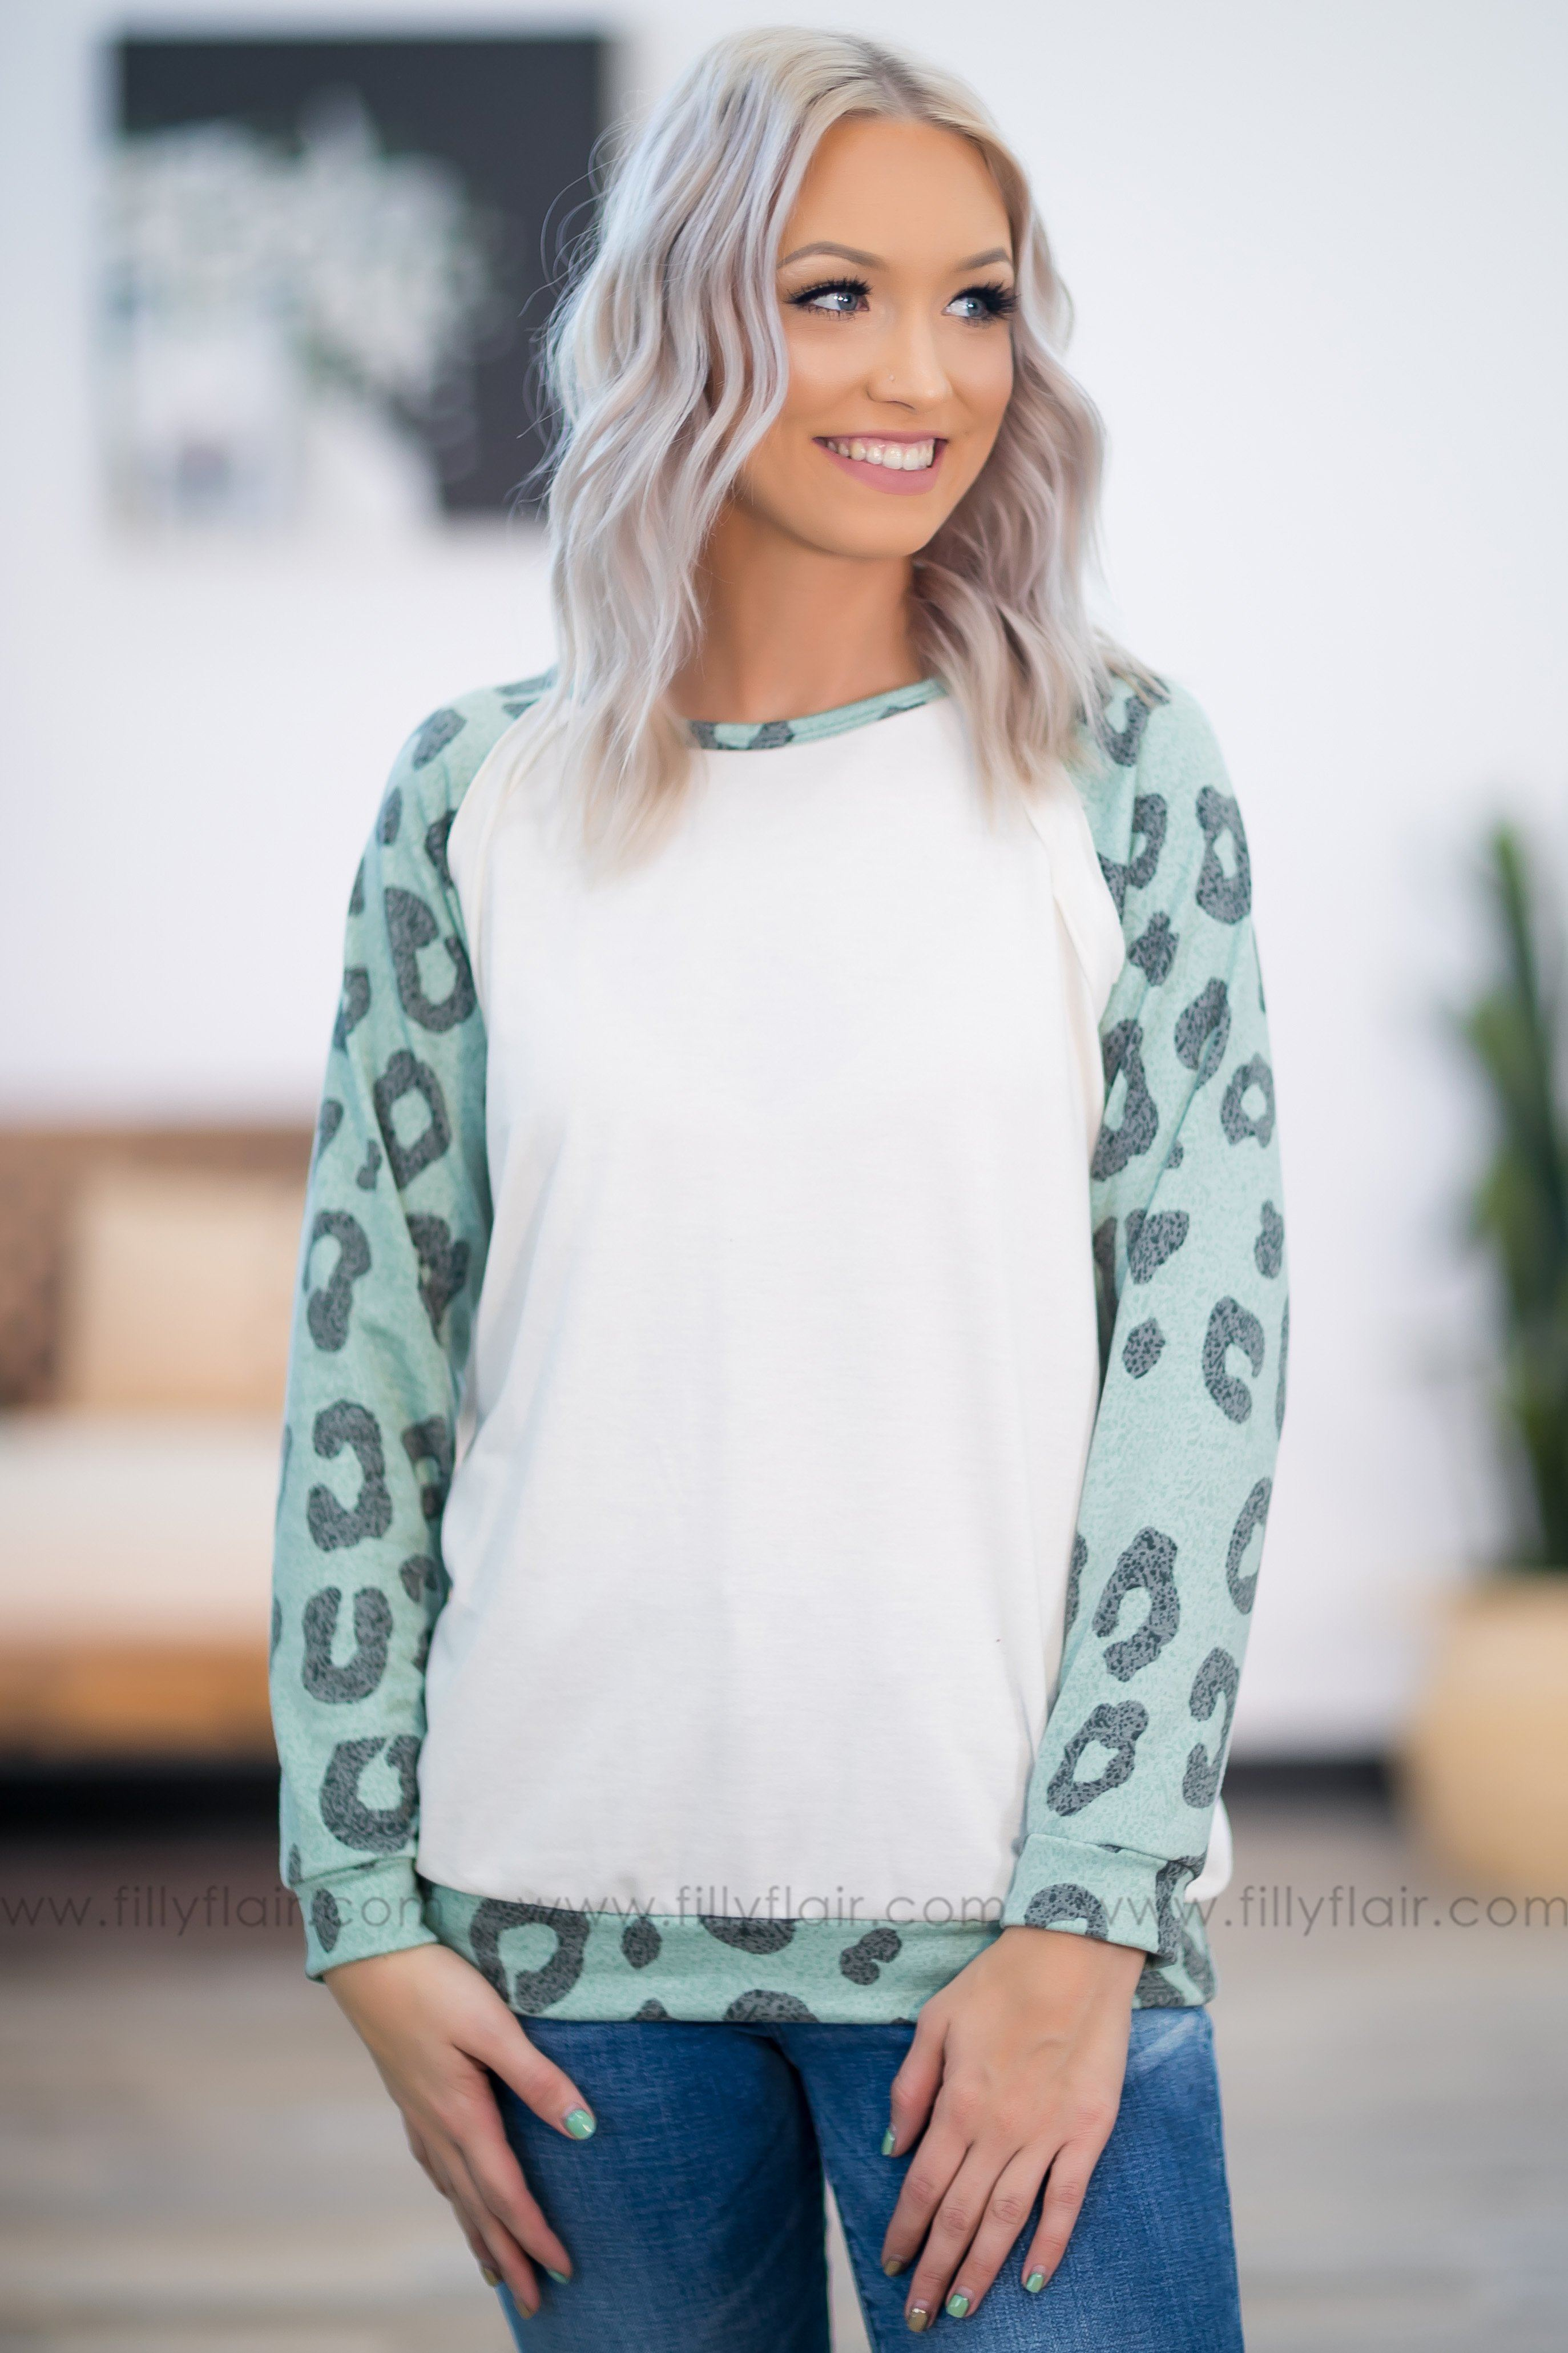 I'll Be Here Leopard Long Sleeve Off White Top in Mint - Filly Flair